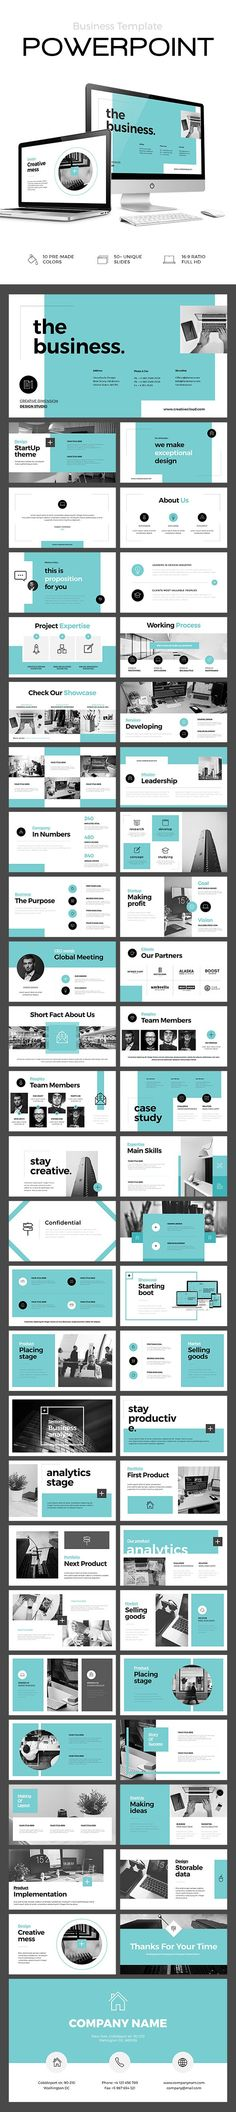 Business Powerpoint Template — PPT #presentation #statistics